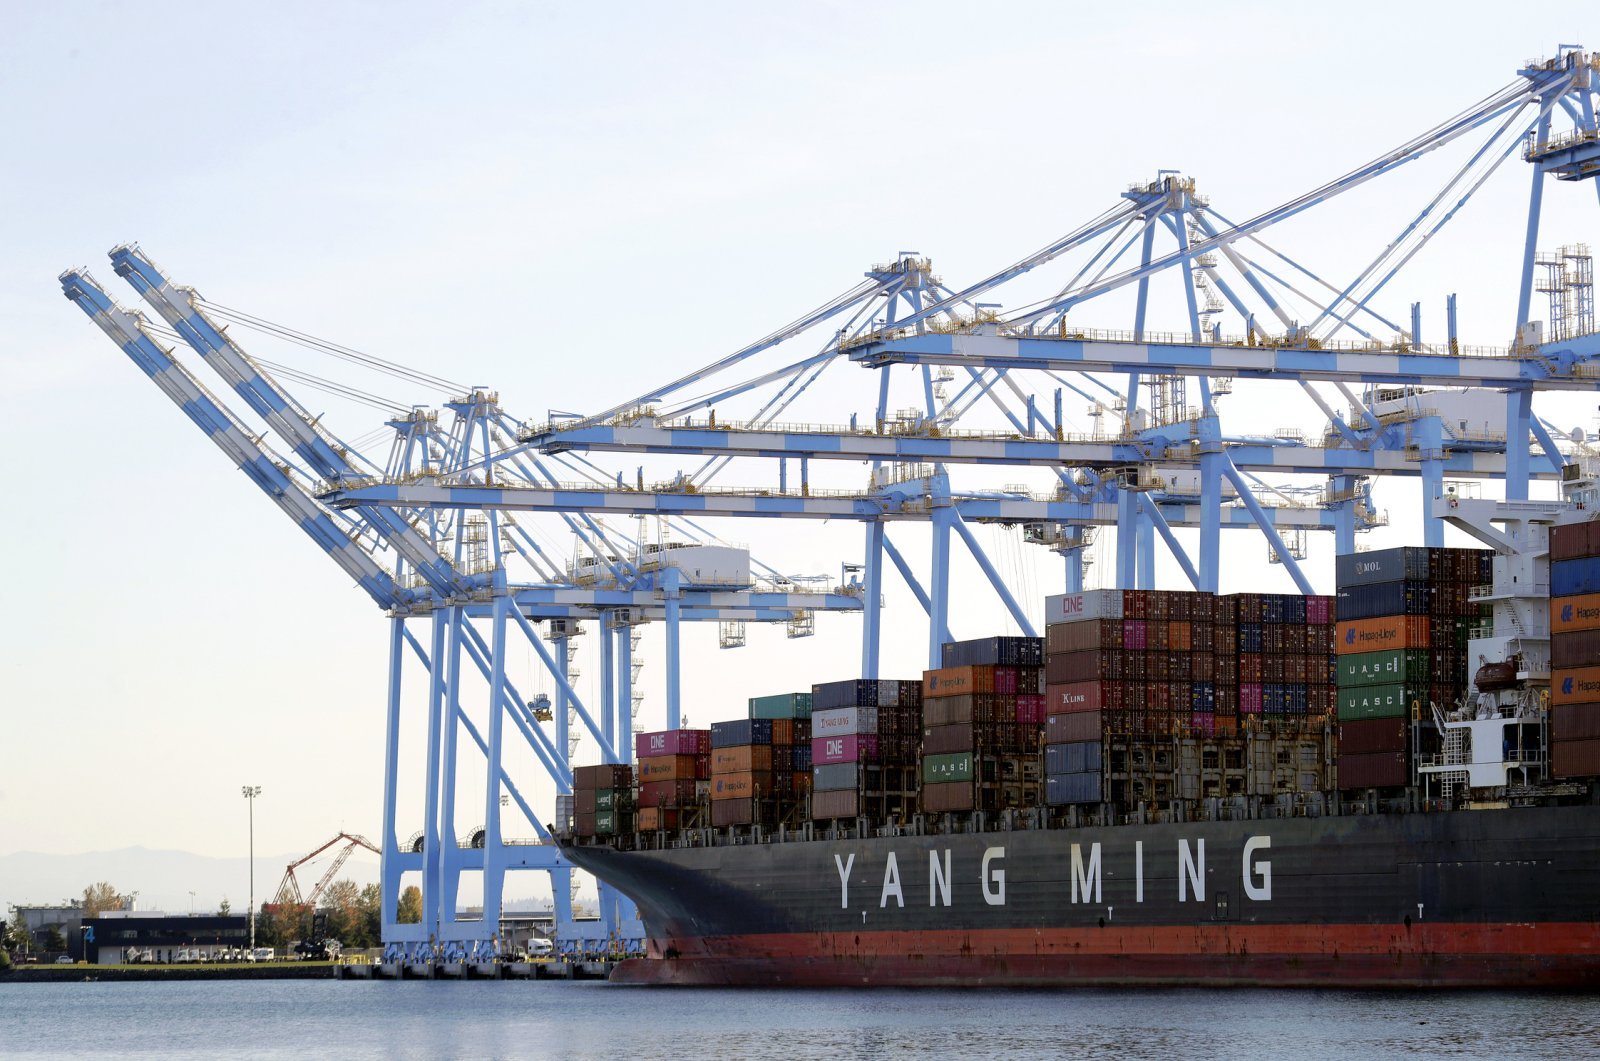 Cargo cranes are used to take containers off of a Yang Ming Marine Transport Corporation boat at the Port of Tacoma in Tacoma, Washington, Nov. 4, 2019. (AP Photo)